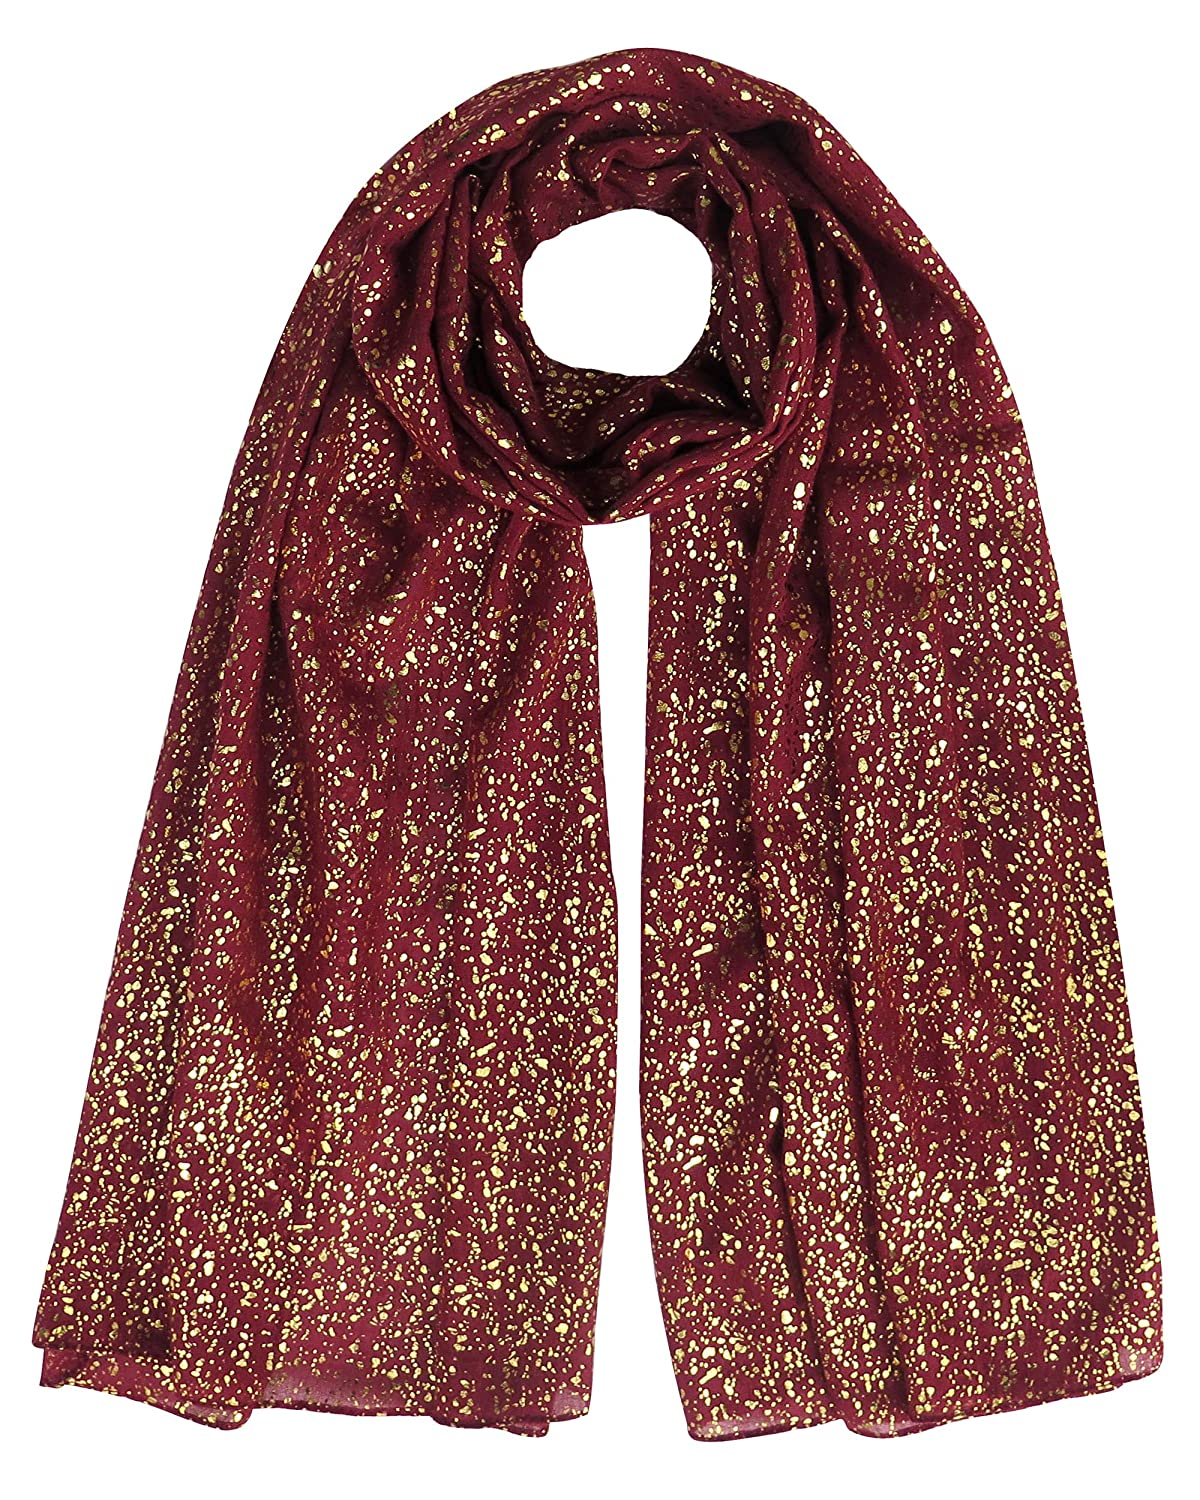 Lina & Lily Gold Glitter Women's Scarf Hijab Head Wrap Oversized (Black)